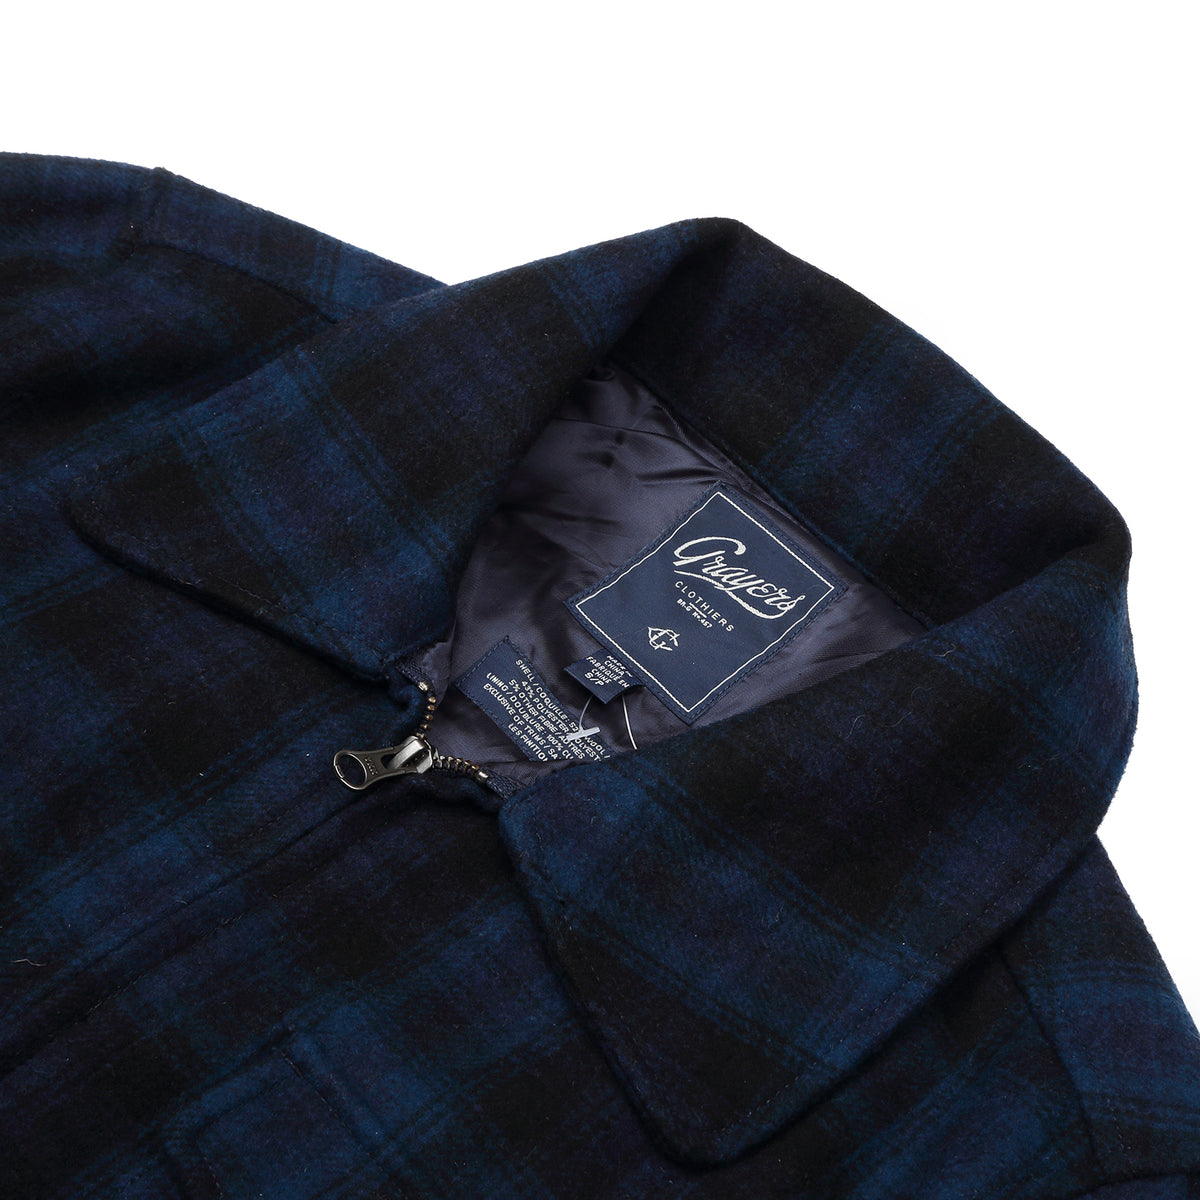 Grayers - Navy Plaid Jacket - Navy